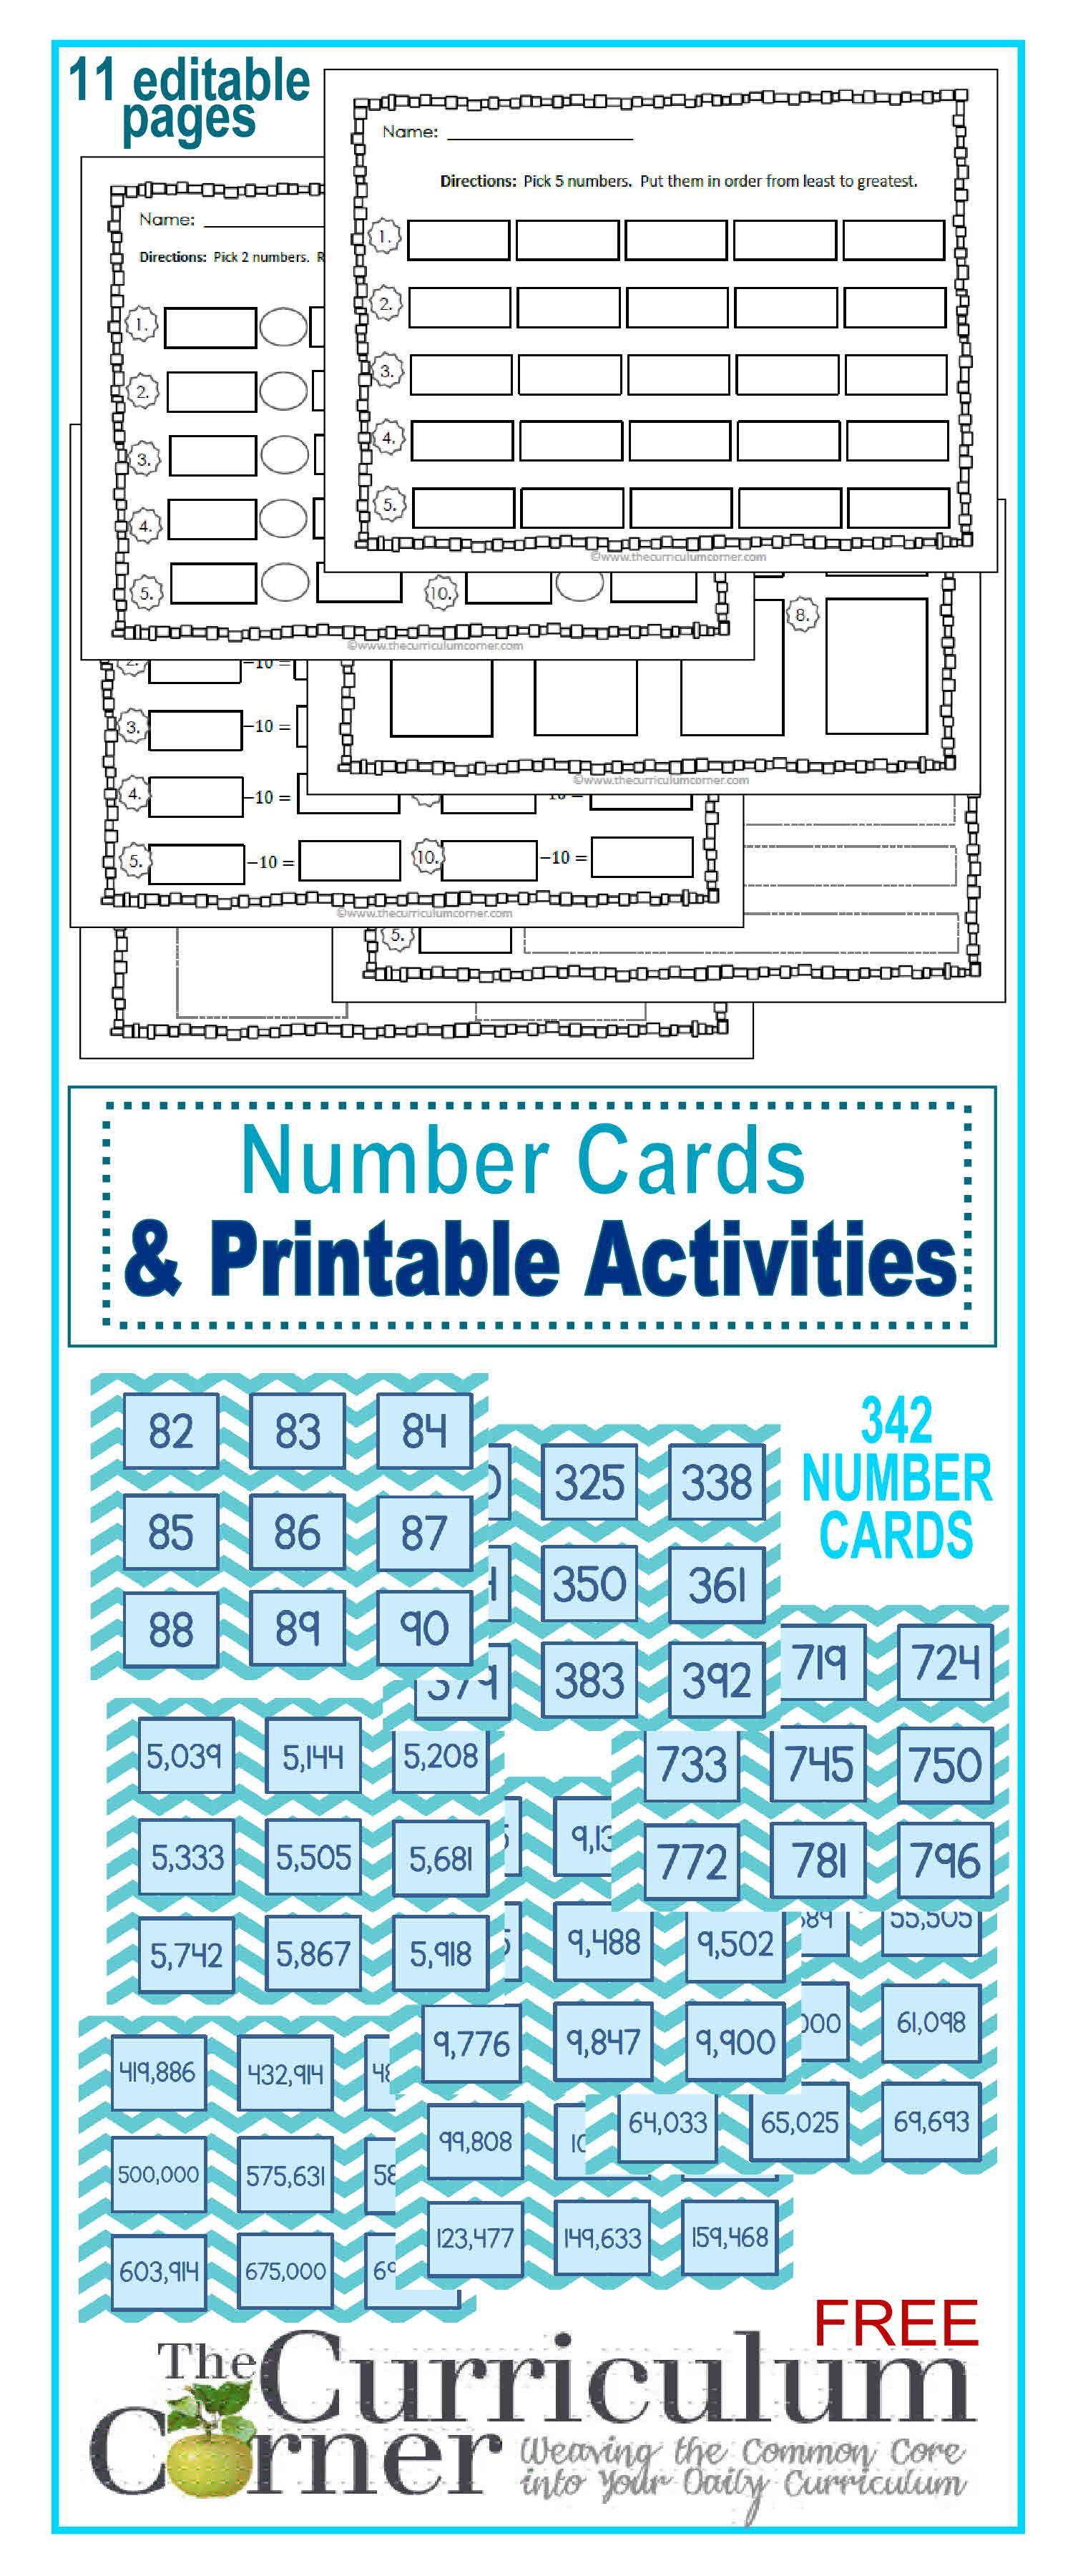 Number Cards & Printable Activities | Pinterest | Number, Curriculum ...